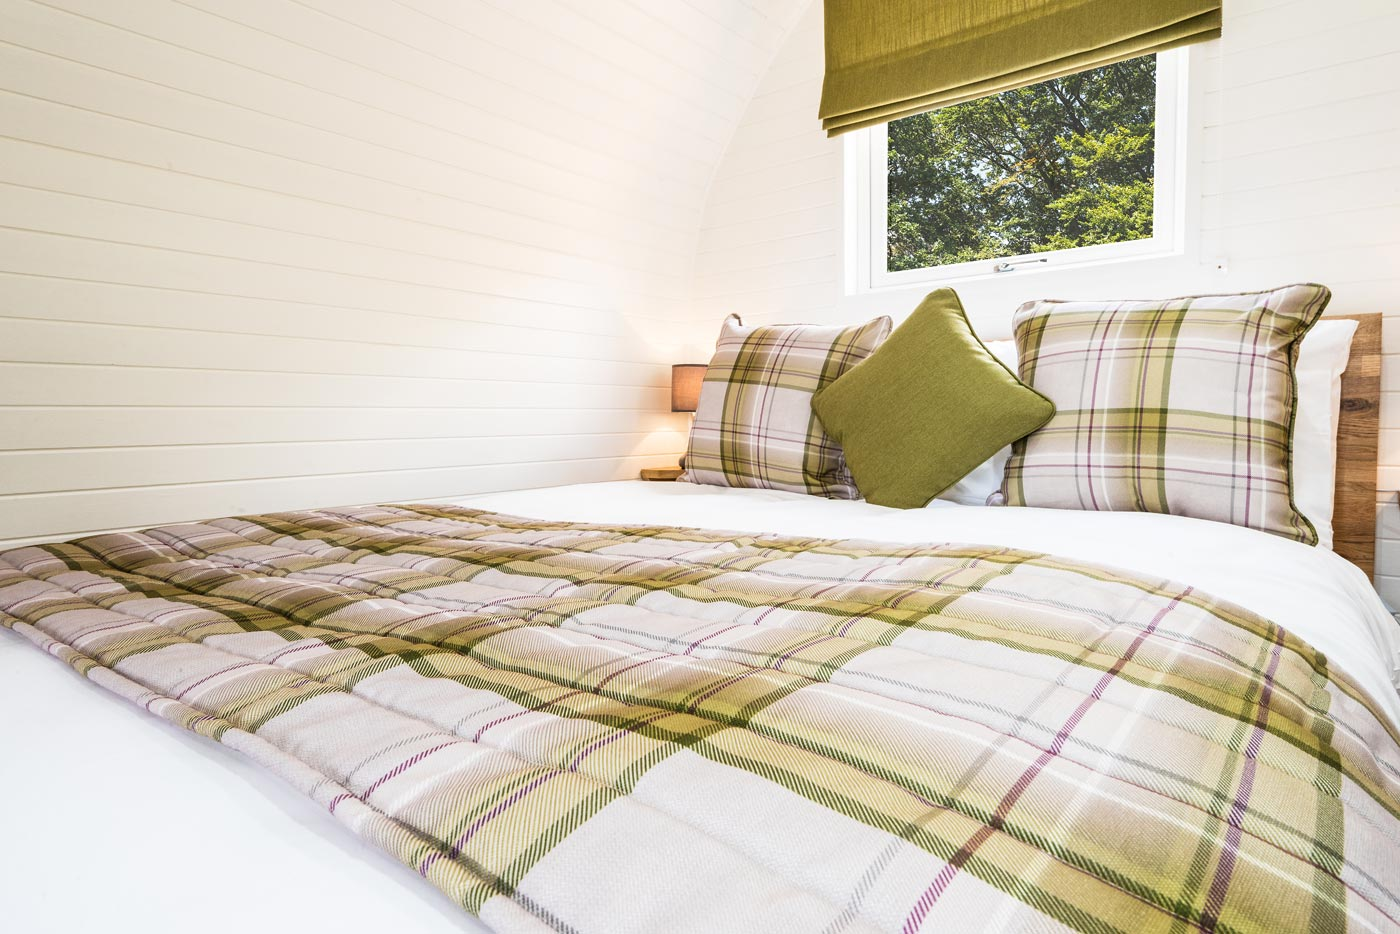 Weedingshall House & Lodges, Glamping, Pods, Camping, Country, Woodland, short break, family accommodation, couples break, barbeque pit, Holiday Accommodation & Apartments, Falkirk, Linlithgow, Stirling, Edinburgh, Glasgow Scotland